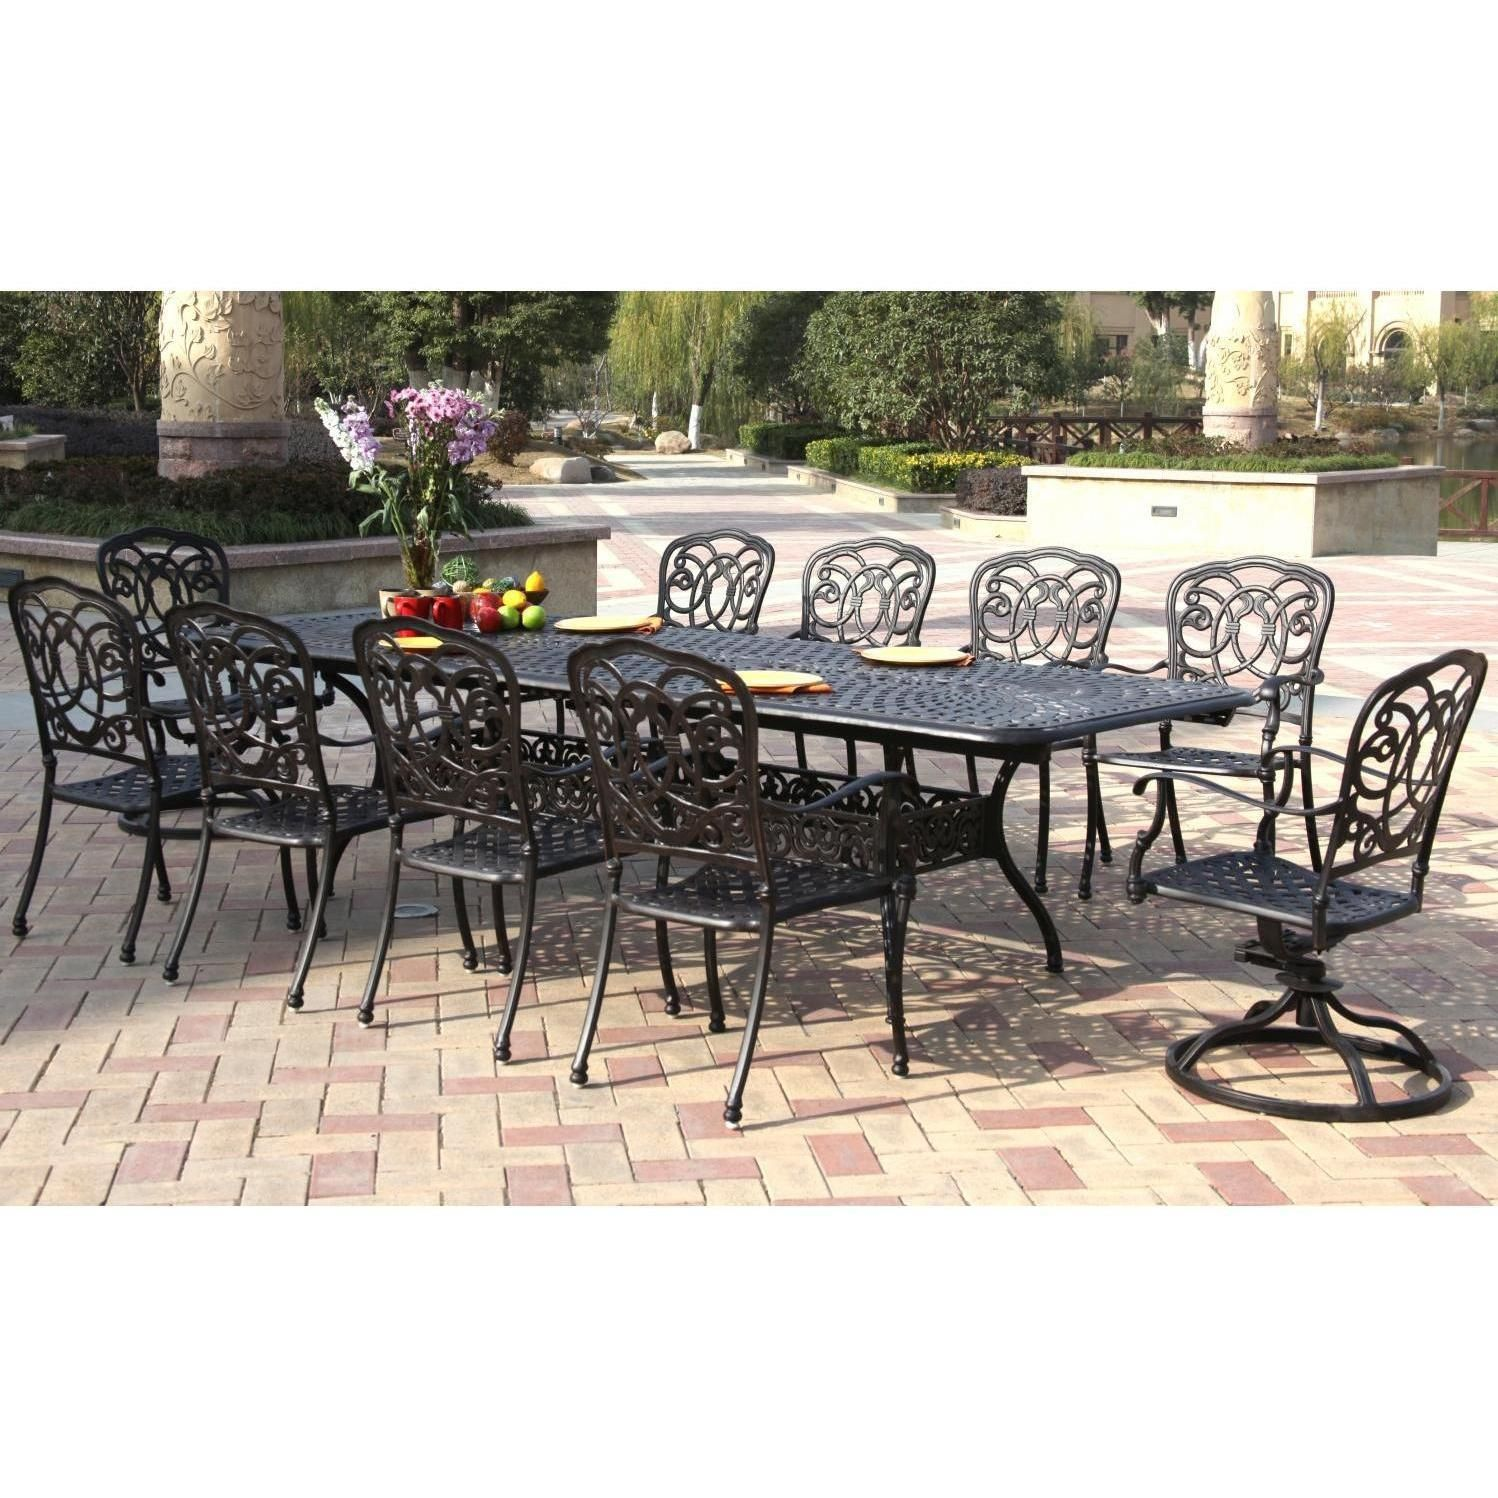 Darlee Florence 10 Person Patio Dining Set Expandable